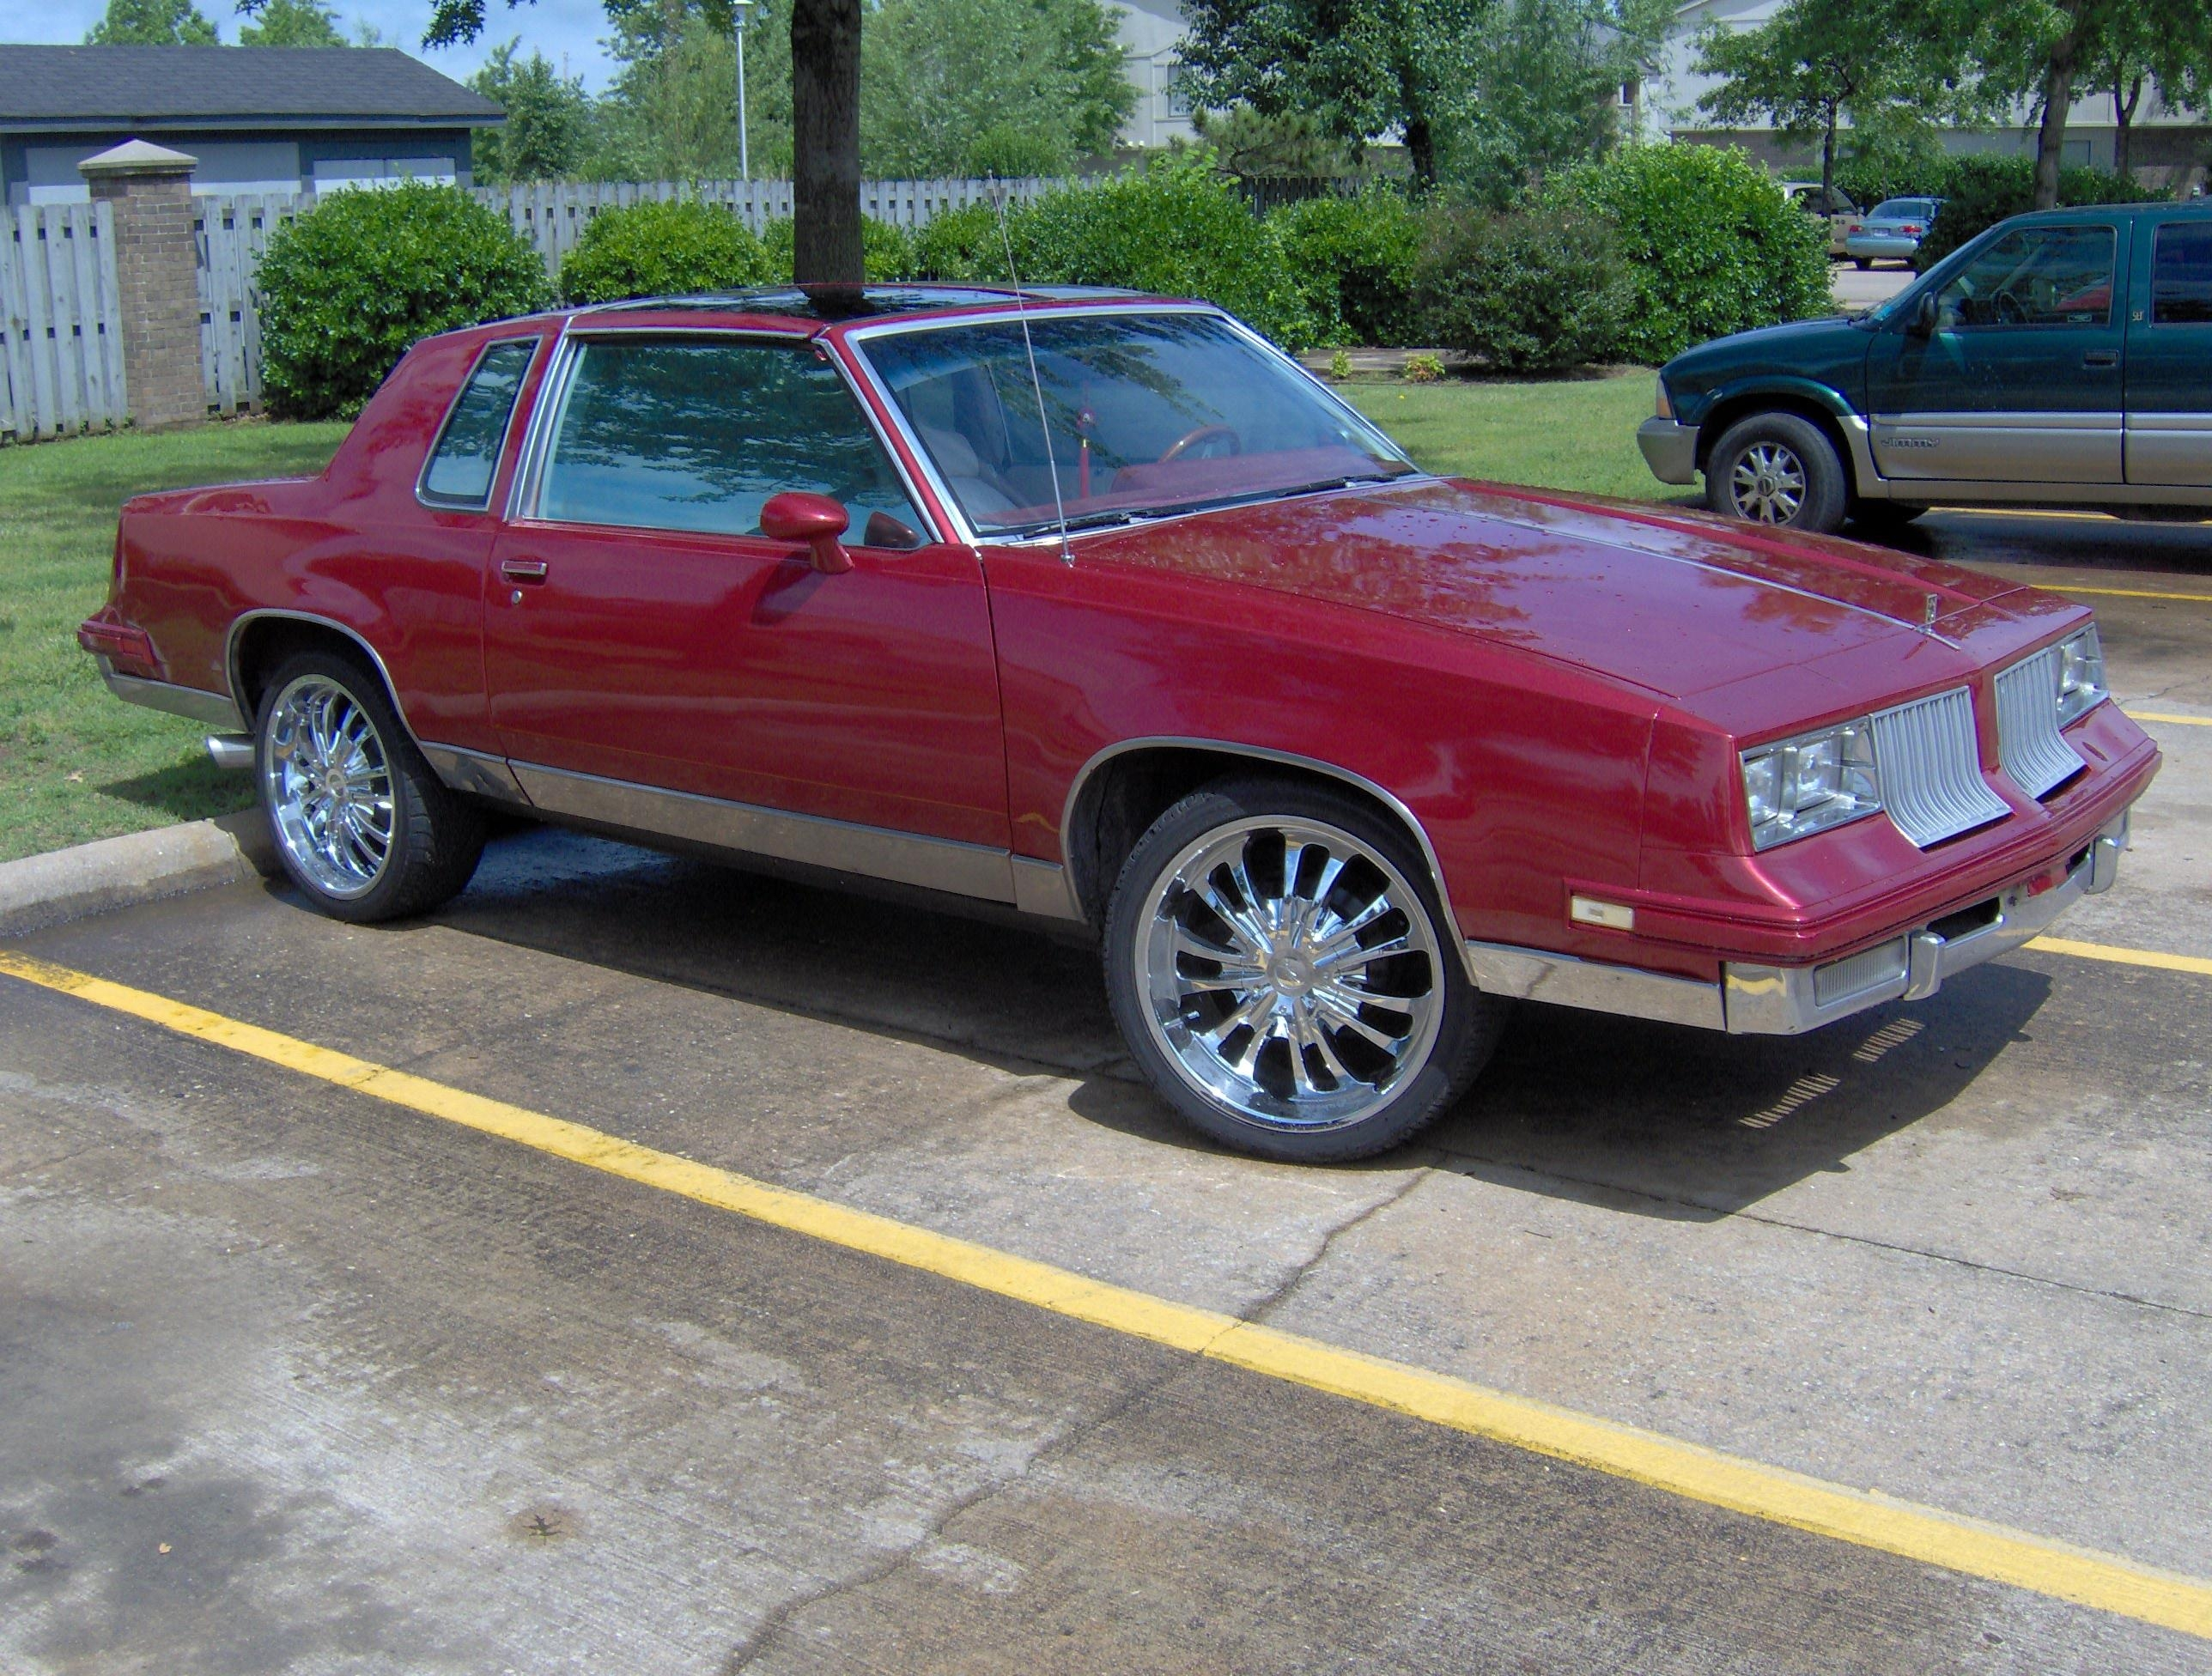 Mr_Nice_Guy's 1984 Oldsmobile Cutlass Supreme